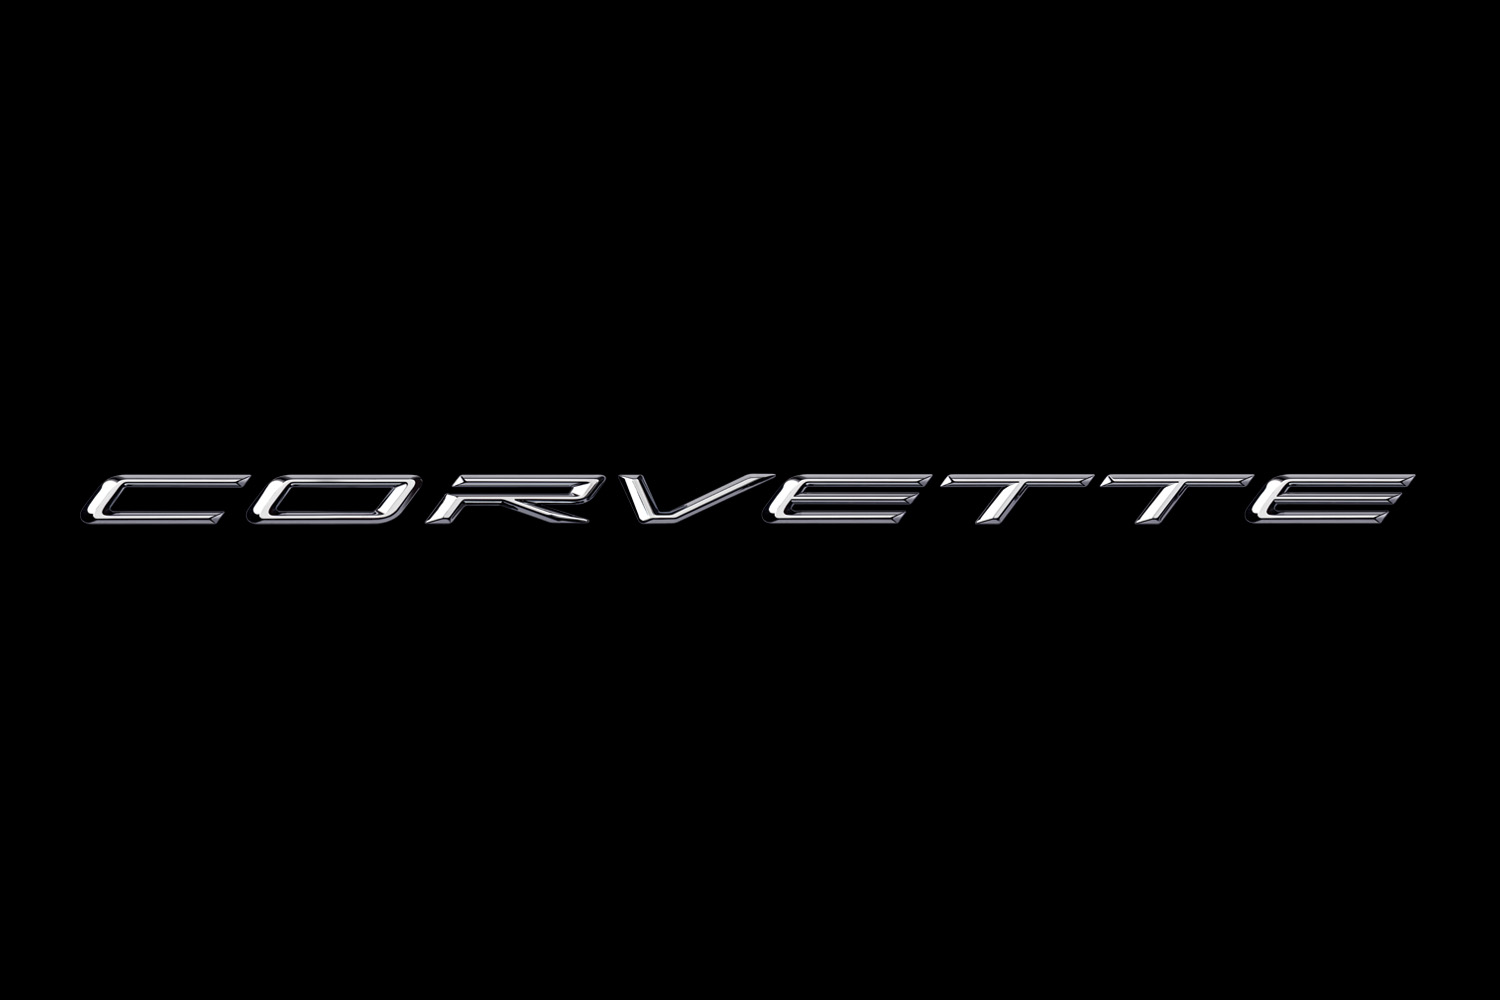 2020 Corvette Signature in Chrome Script on Black